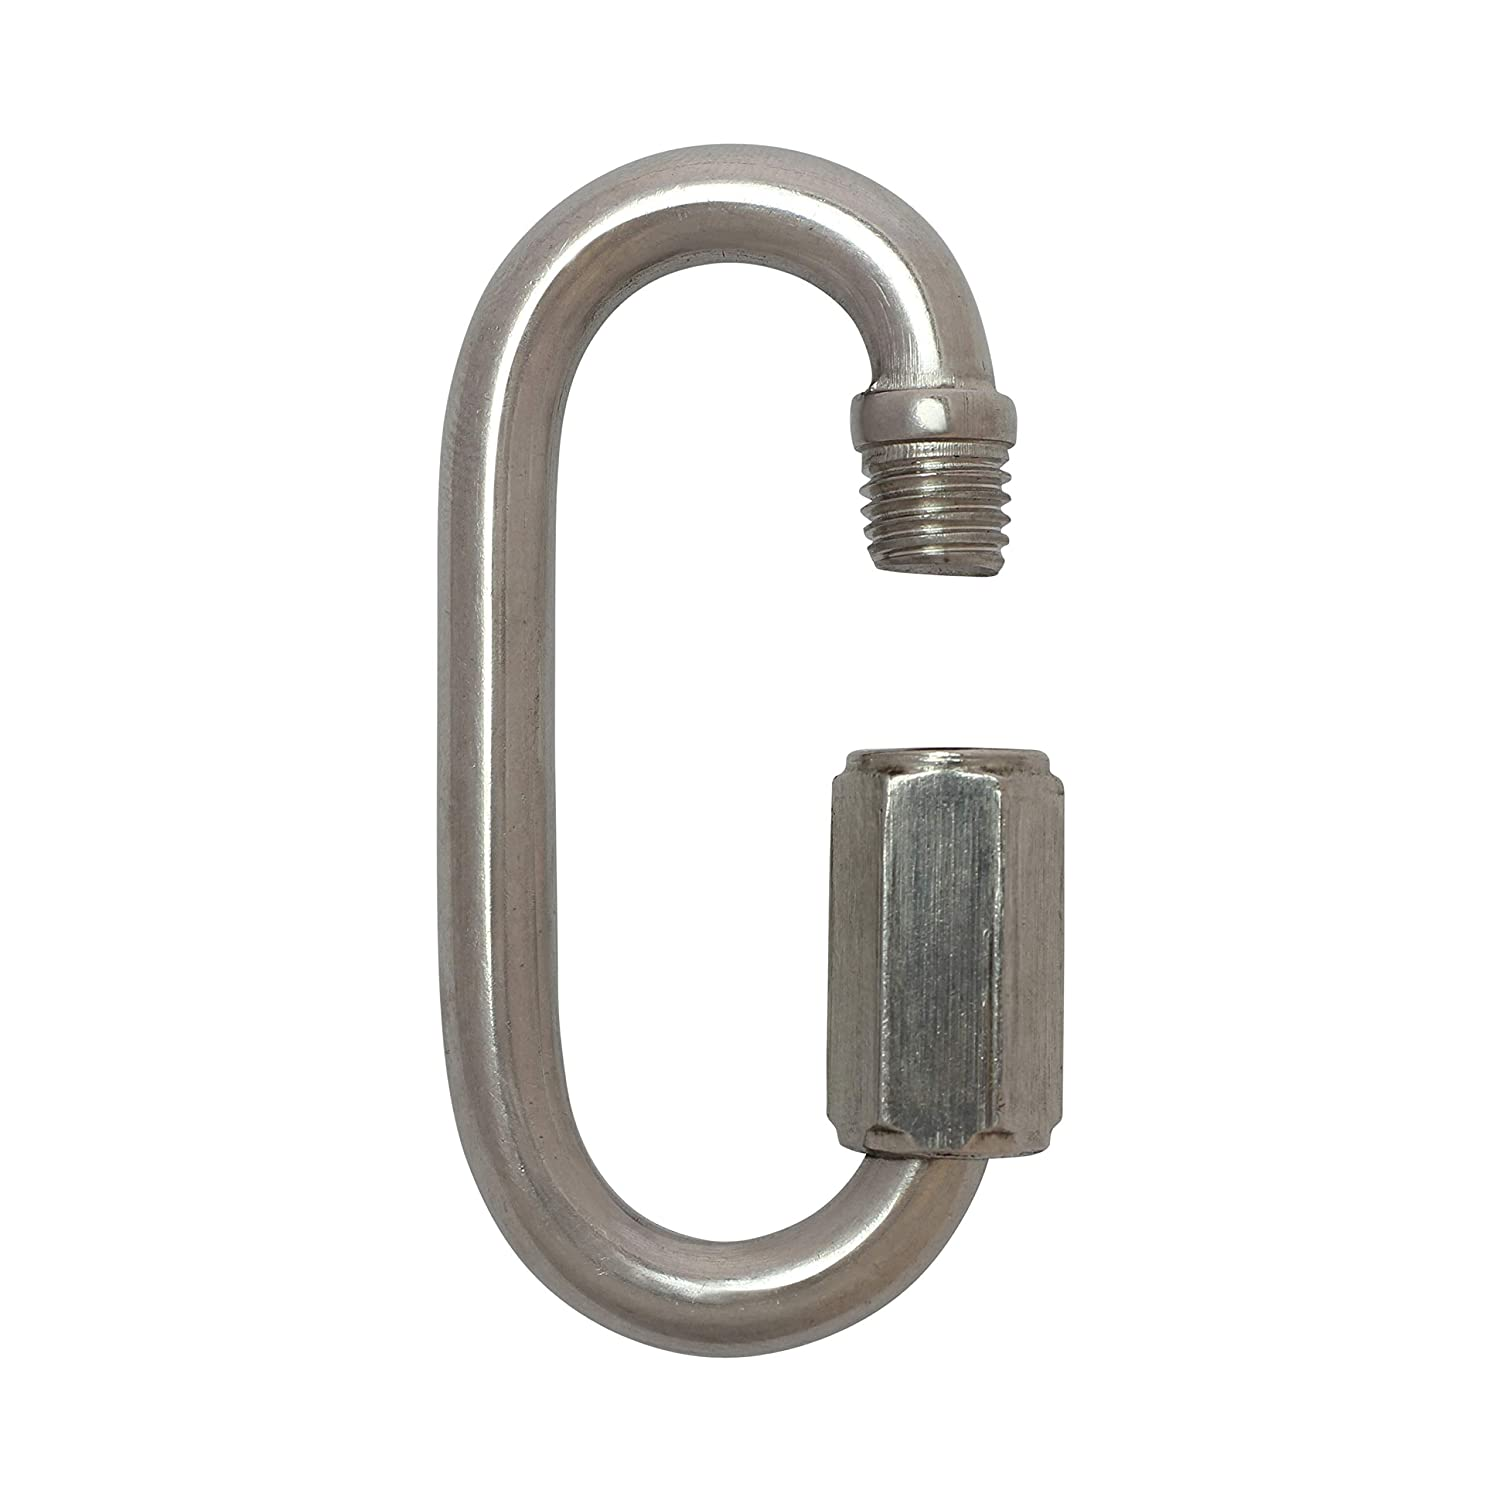 3 Gauge RCH Hardware QL-SS03-60 Stainless Steel Quick Link 5 Pack Stainless Steel